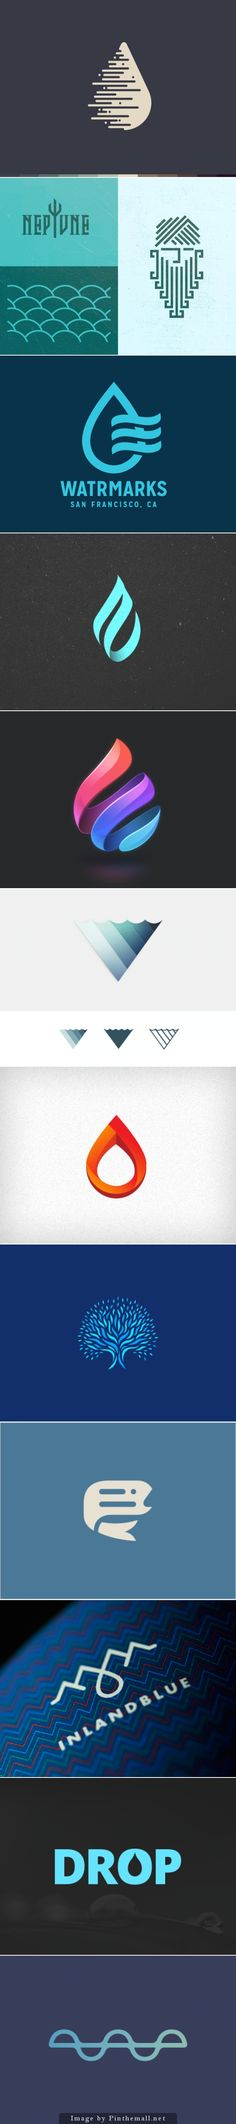 20 Beautiful Water Inspired Logos Logo - Vol combined with crest. Im stretching it now. I still like including all of volcrest at this time. maybe make the just the V the logo Type Logo, 2 Logo, Typography Logo, Logo Branding, Branding Design, Brand Identity, Coperate Design, Logos Online, Inspiration Logo Design